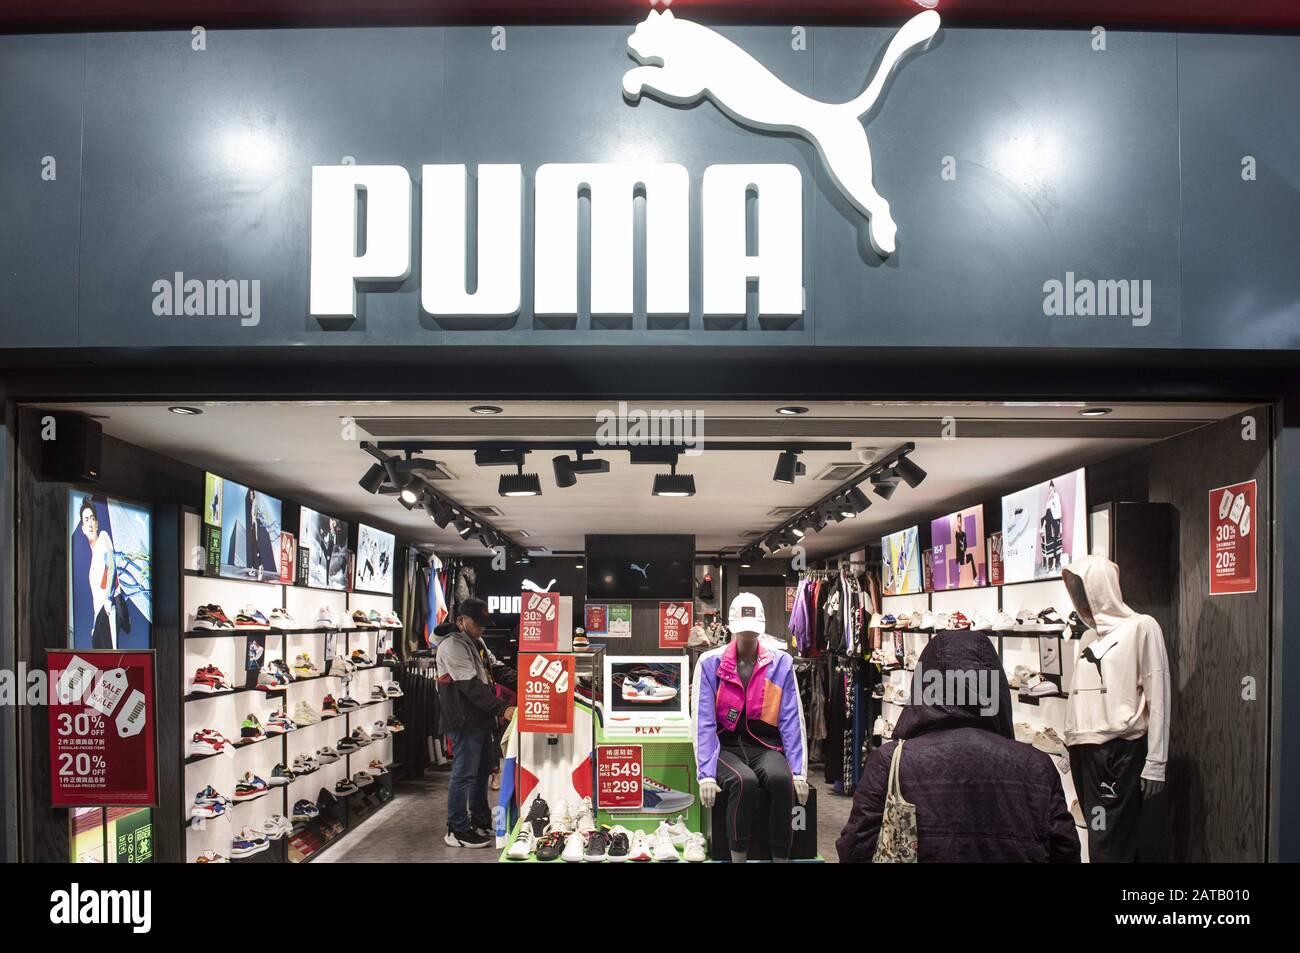 Puma Store High Resolution Stock Photography and Images - Alamy